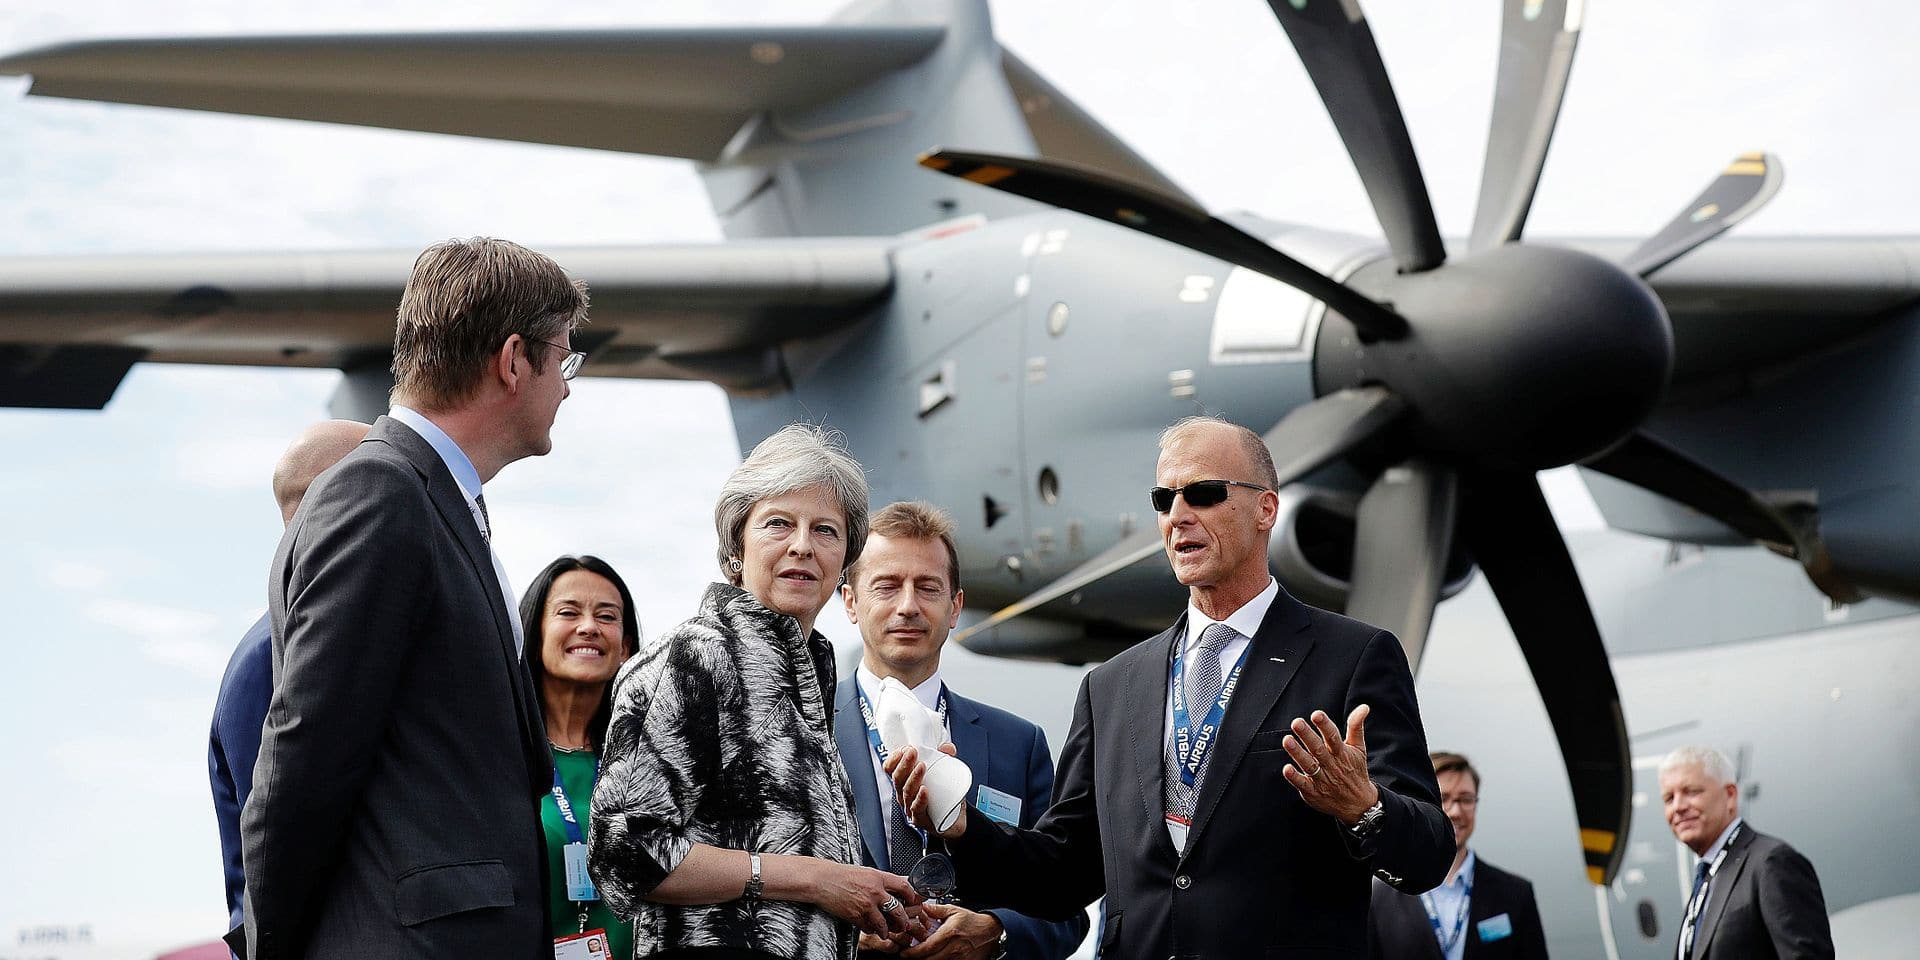 British Prime Minister Theresa May, second left speaks with Airbus CEO Tom Enders, right, from Germany, backdropped by an Airbus A400M Atlas military transport aircraft at the Farnborough Airshow in Farnborough, England, Monday, July 16, 2018. (AP Photo/Matt Dunham)